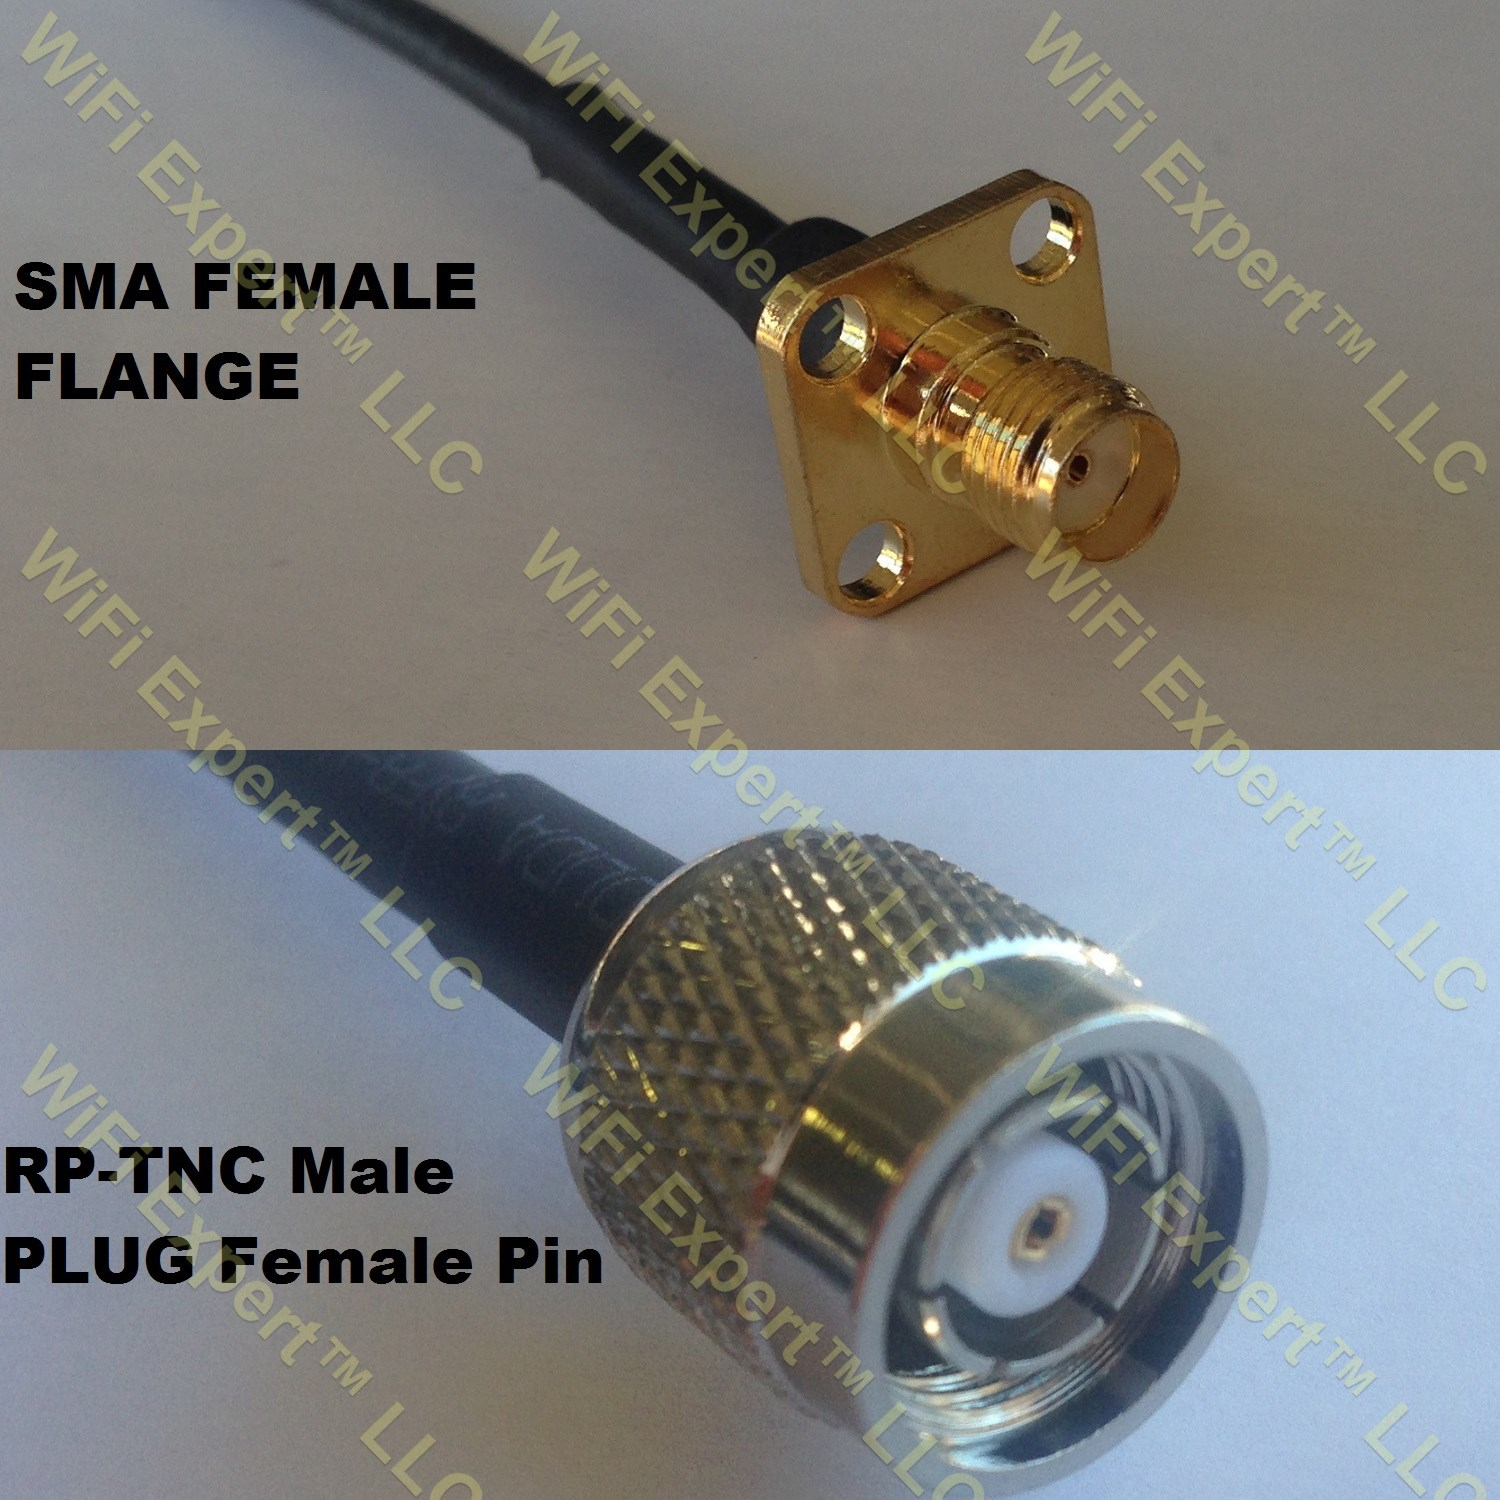 Lmr195 Rp Tnc Male To Rp Sma Male Coaxial Rf Pigtail Cable additionally Nickel Bnc Male Plug To F Type Tv Female Jack Rf Adapter Connector in addition Lmr400 Rp Tnc Female To Rp Tnc Male Coaxial Rf Pigtail Cable together with 2 together with Indoor Antenna For Hf Shortwave Magloop Vs Long Wire. on tnc ham radio kits